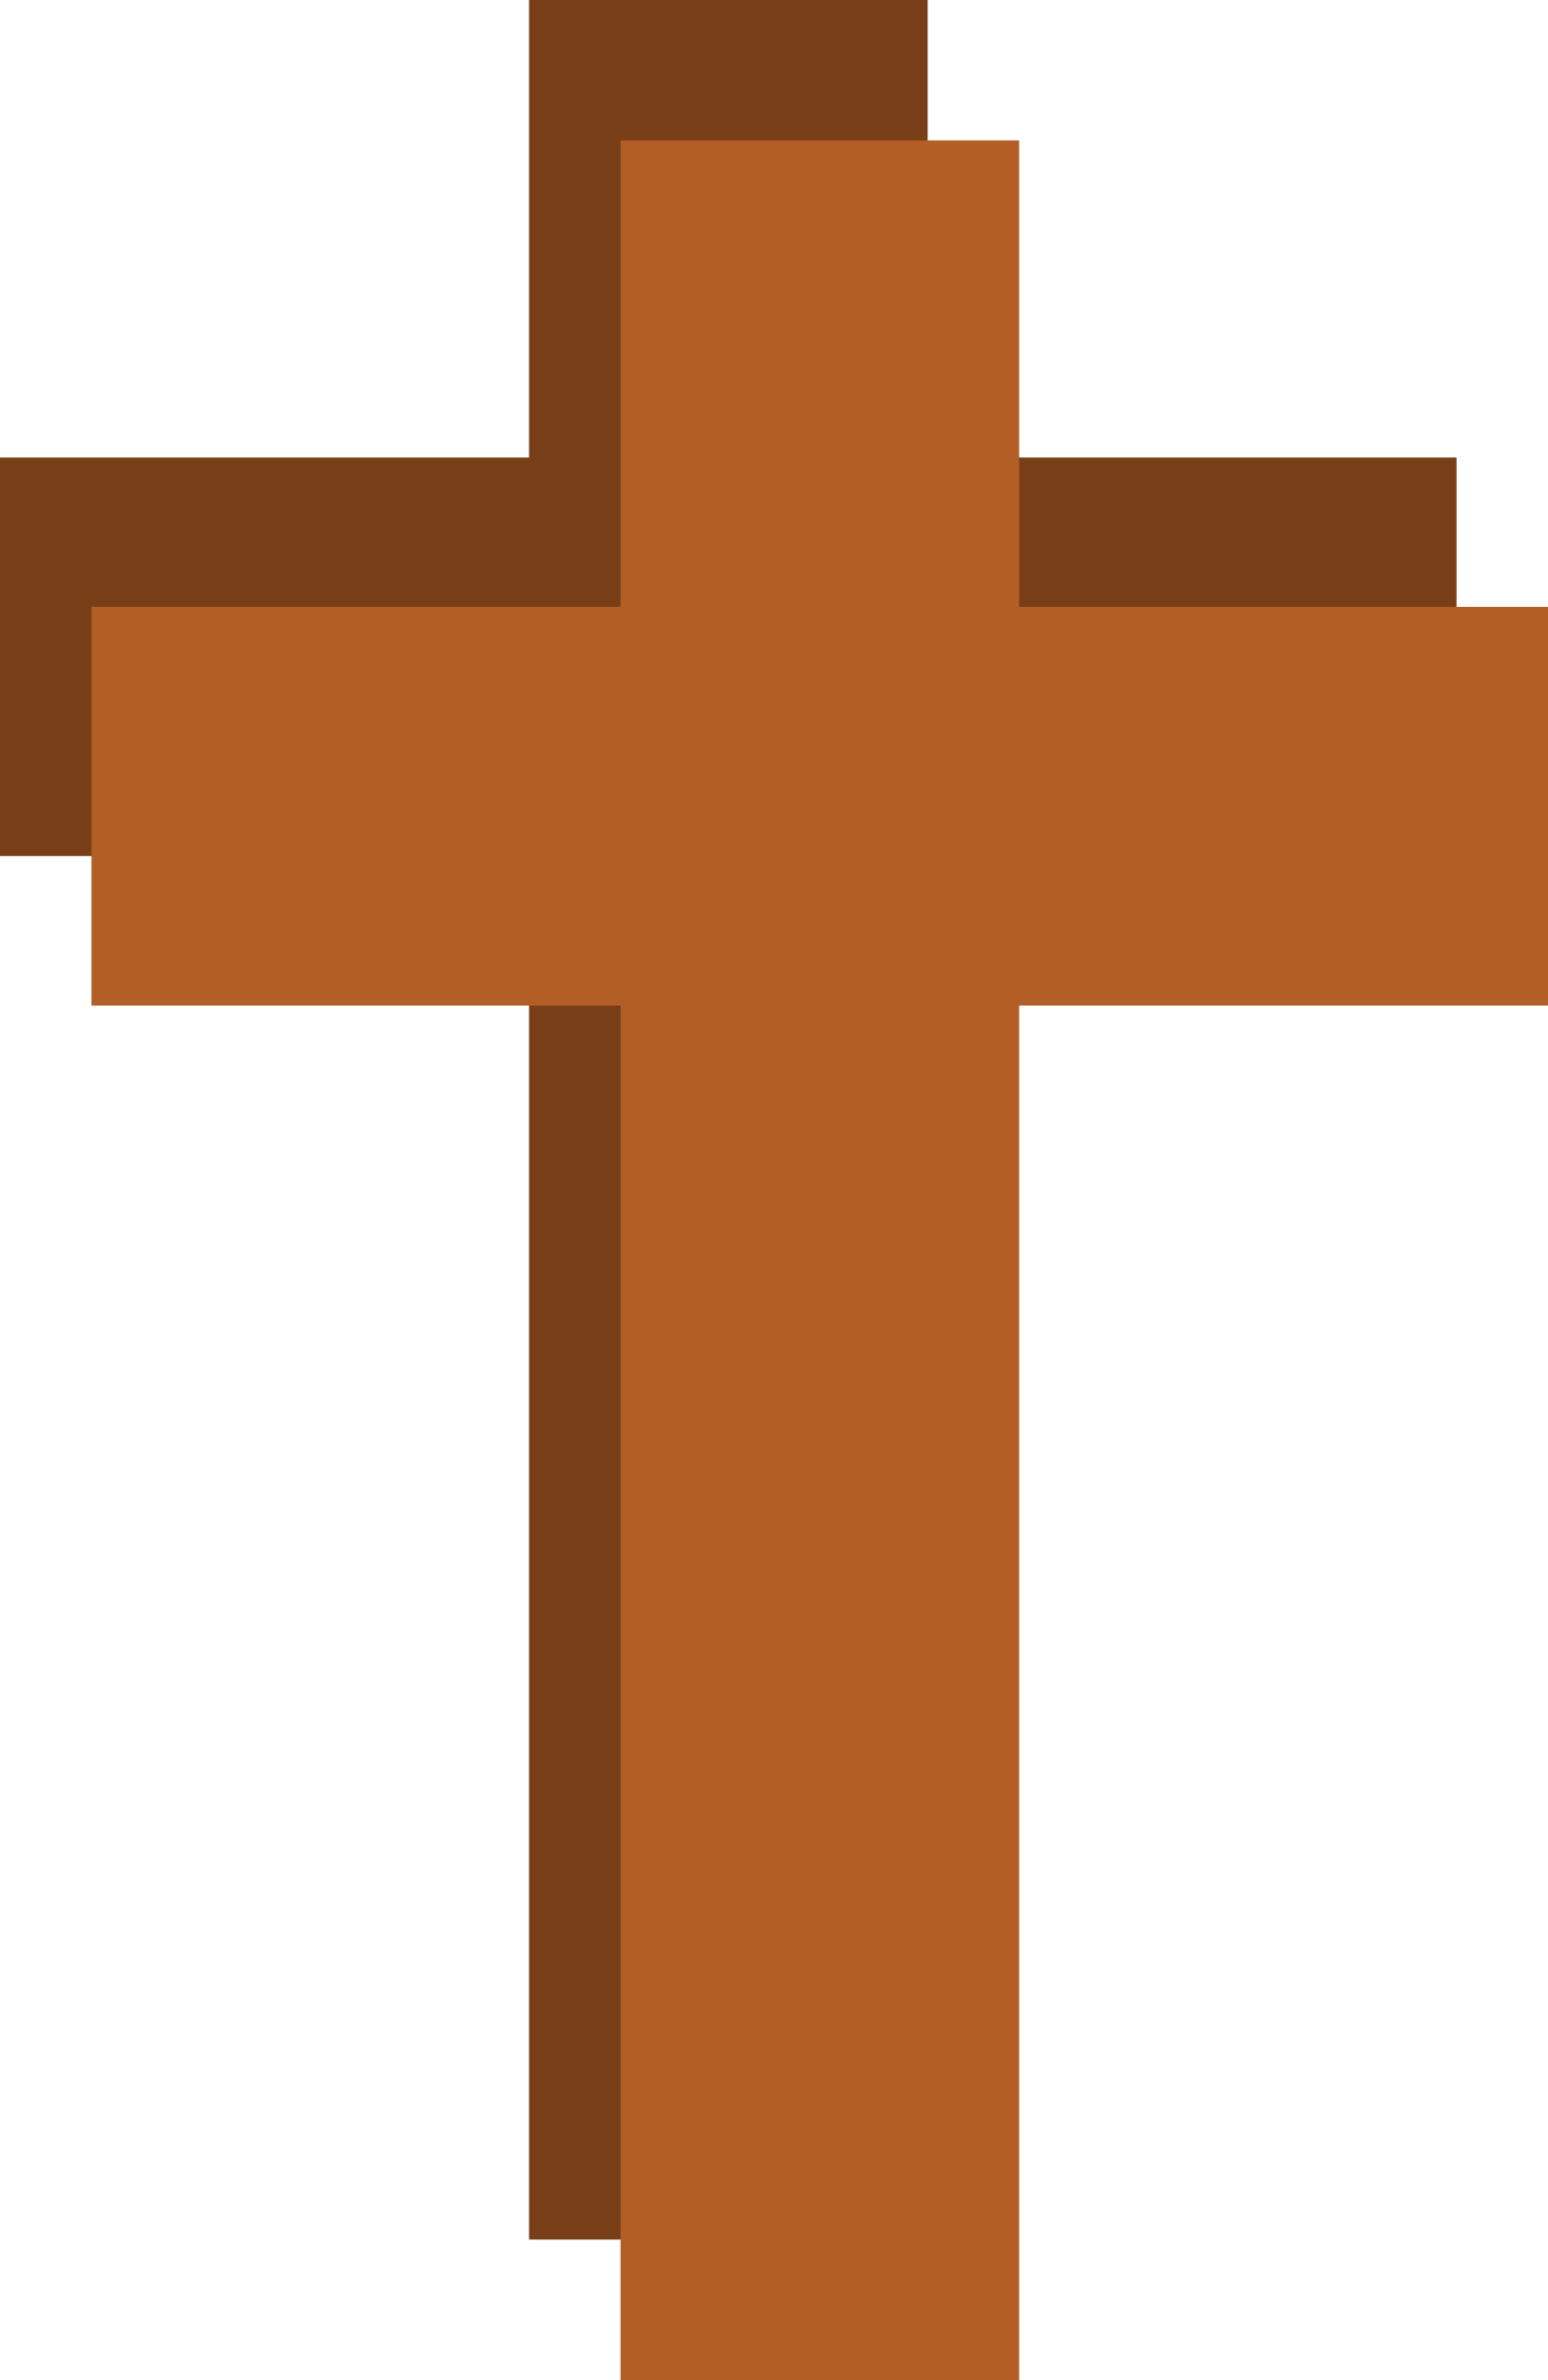 Cross with shadow clipart clip art royalty free library Clipart - Stylized Christian Cross clip art royalty free library